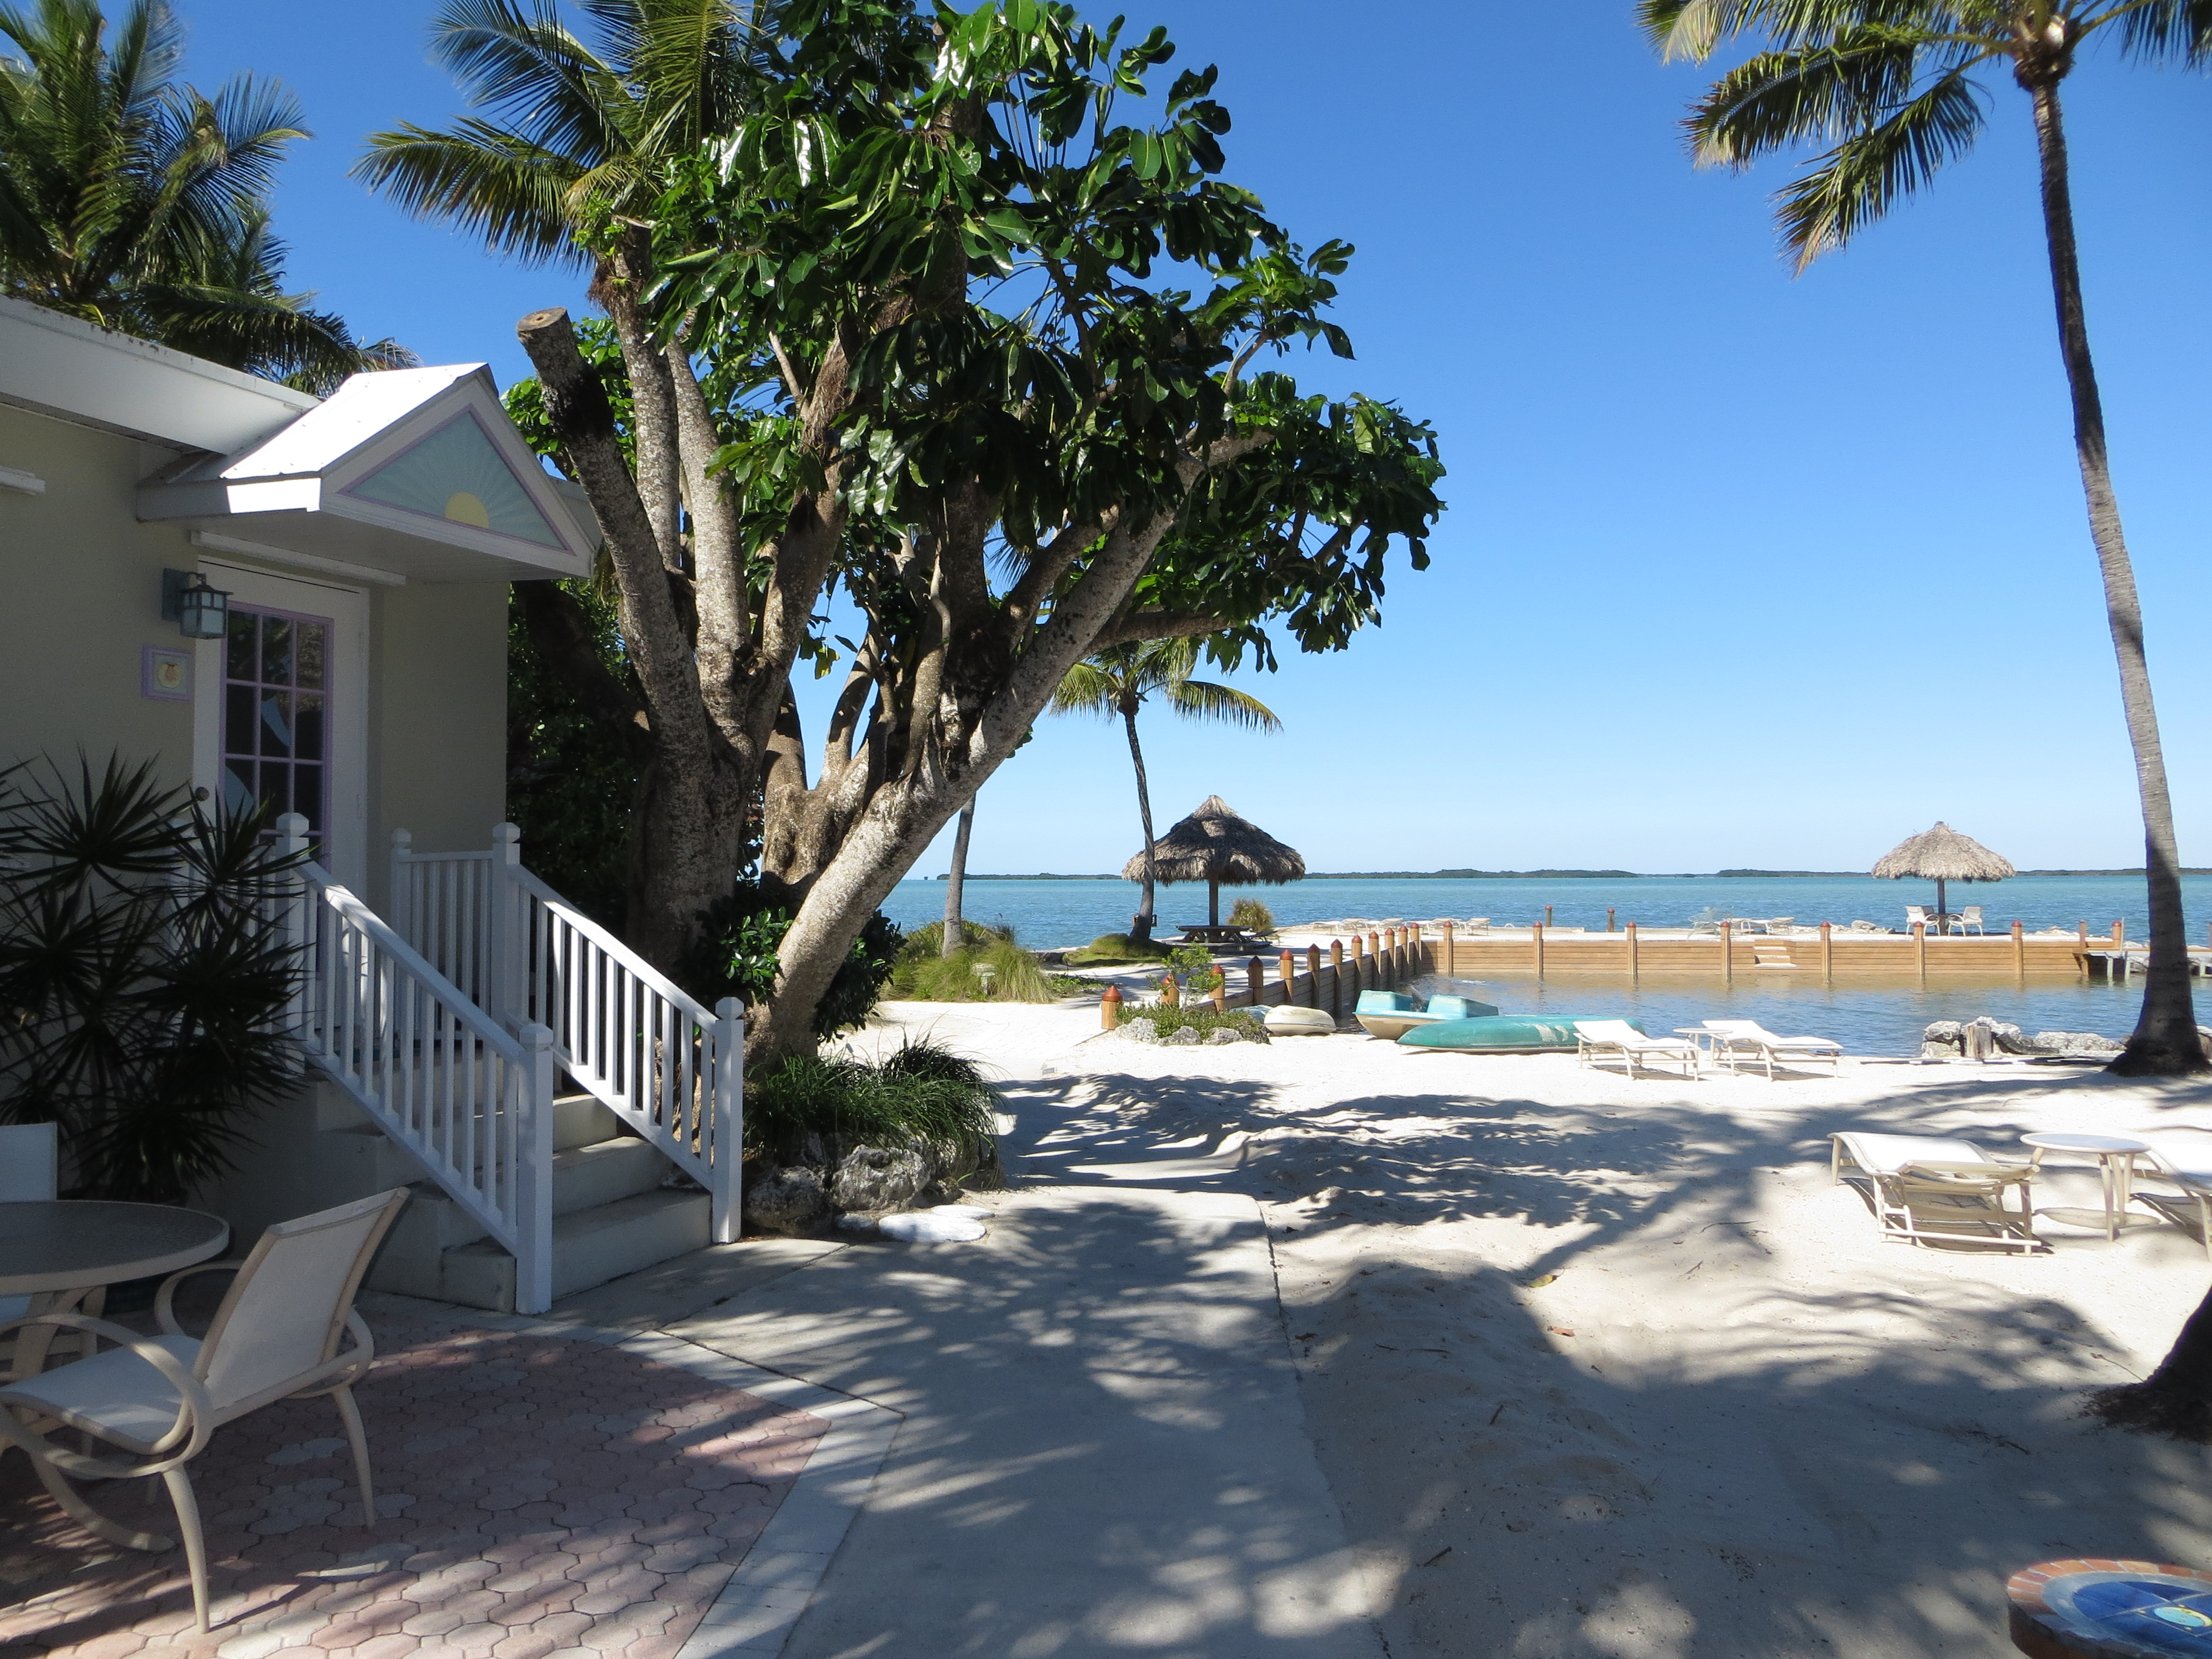 your canals fl for marybethcharles direct key largo in rentals short with iha cc cottages vacations term